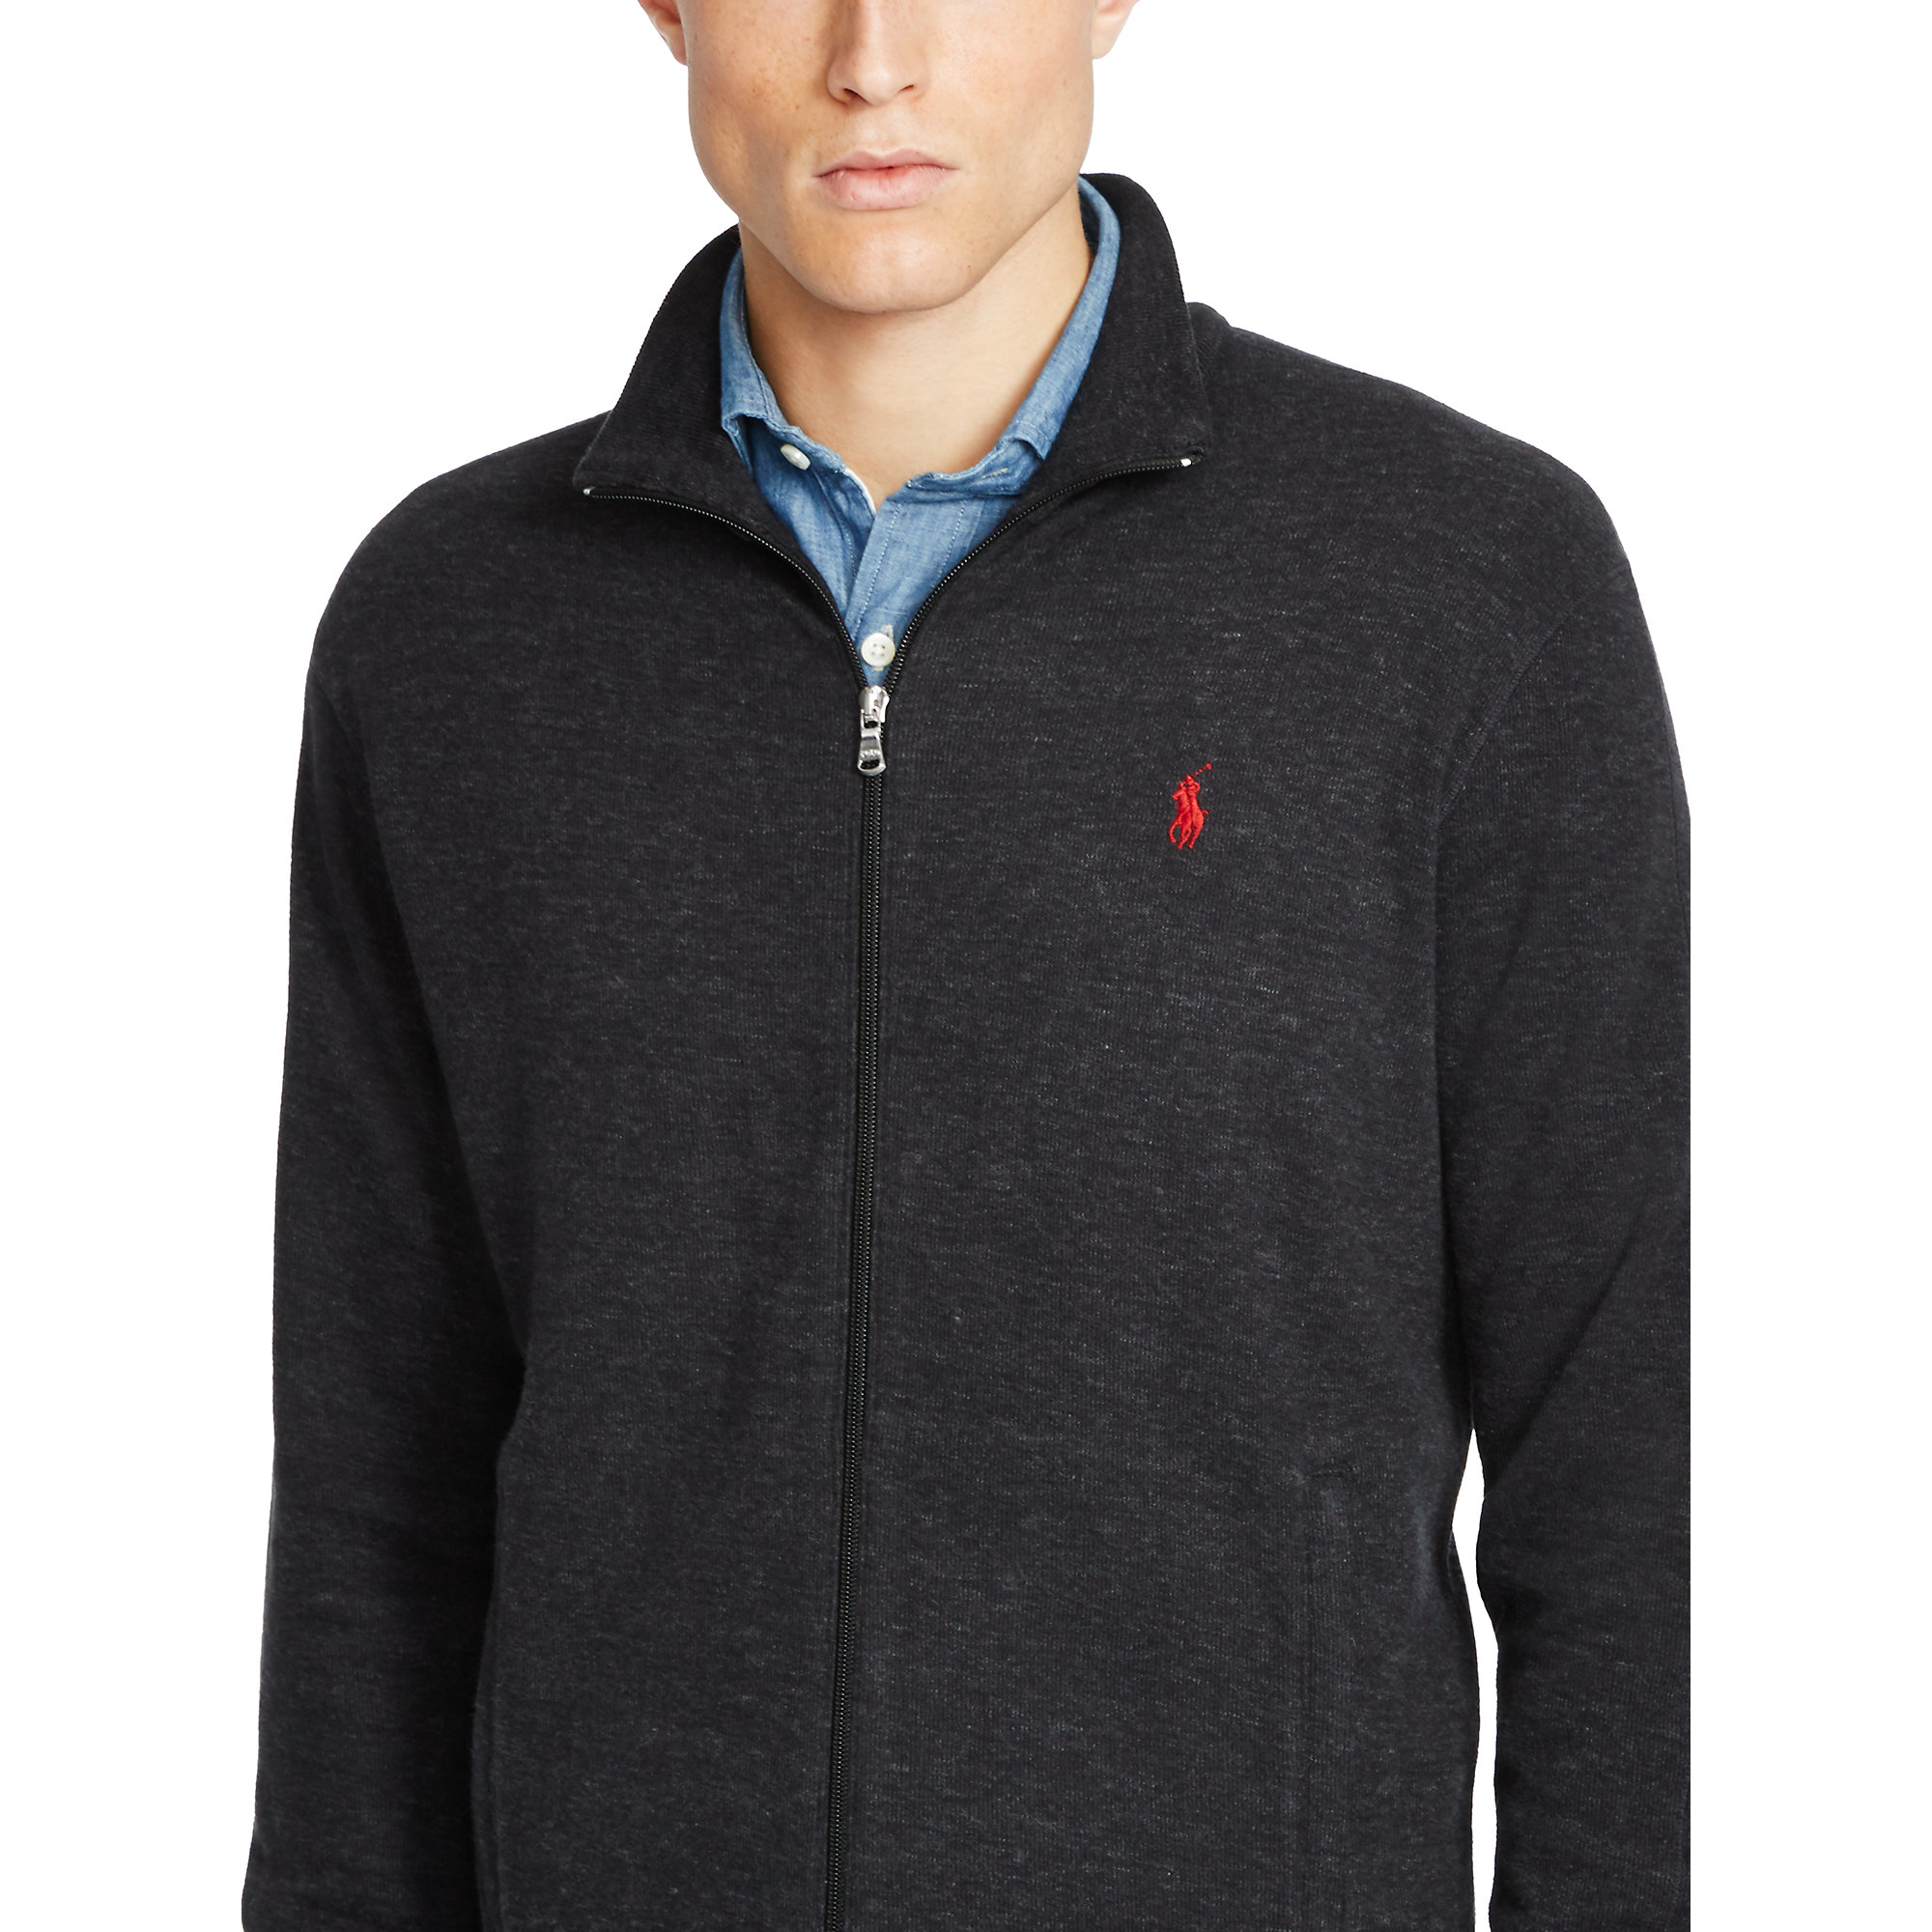 Polo Ralph Lauren French-Rib Full-Zip Black Hoodie .